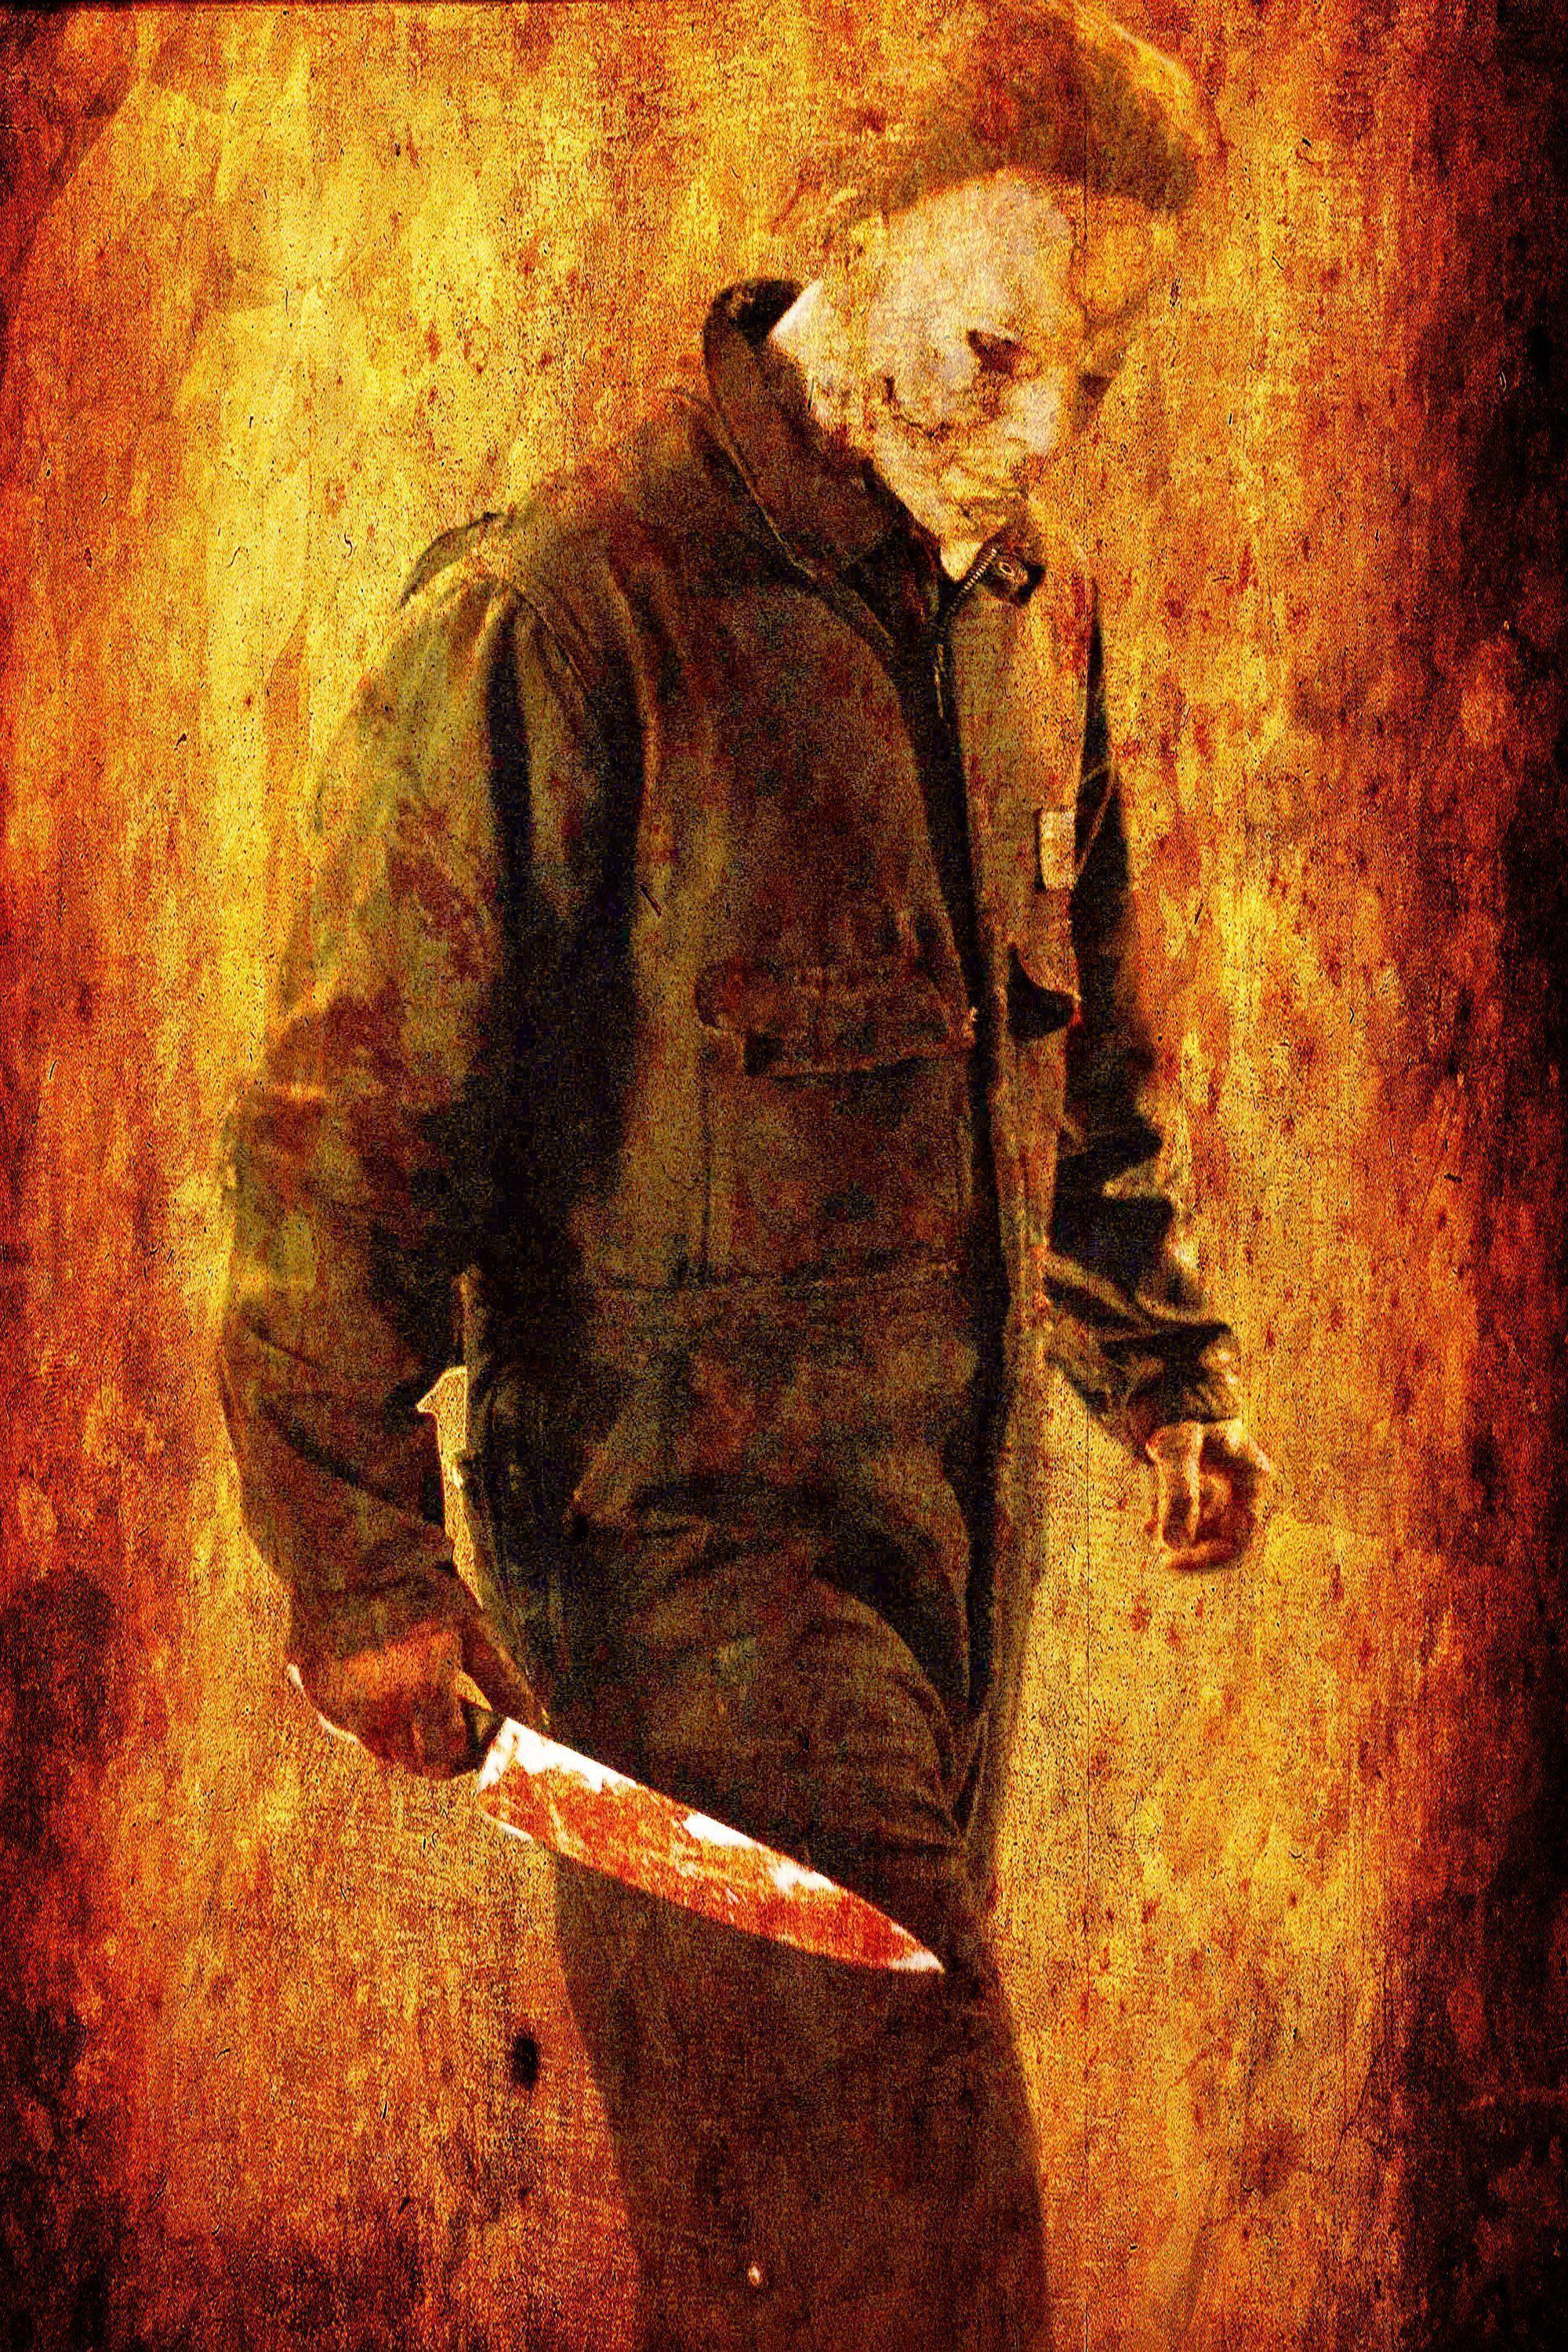 🎃Michael Myers Halloween Wallpapers🎃 for Android - APK ...